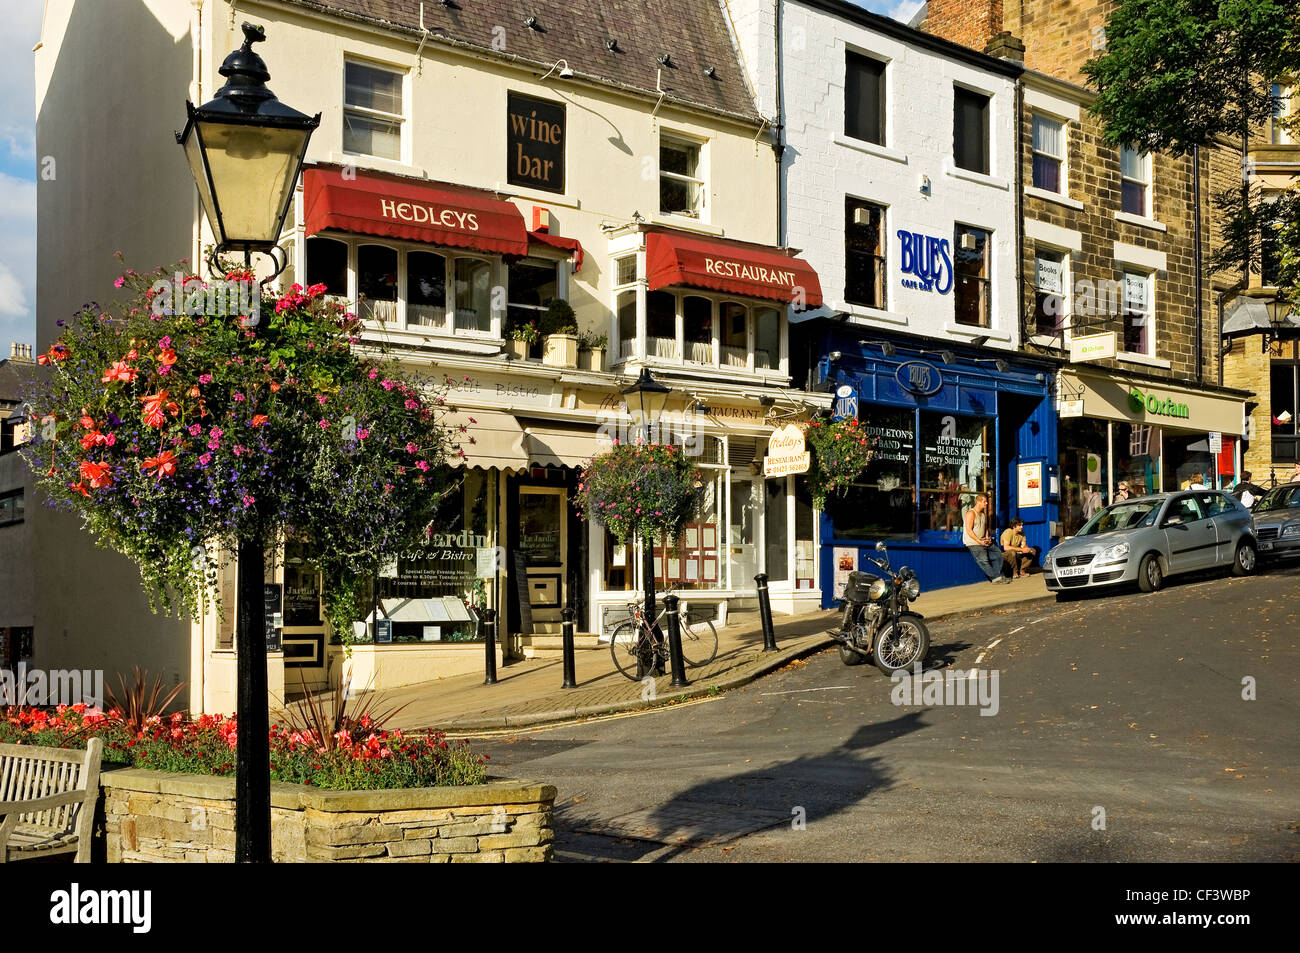 lamp post with hanging flower basket on montpellier parade stock photo royalty free image. Black Bedroom Furniture Sets. Home Design Ideas